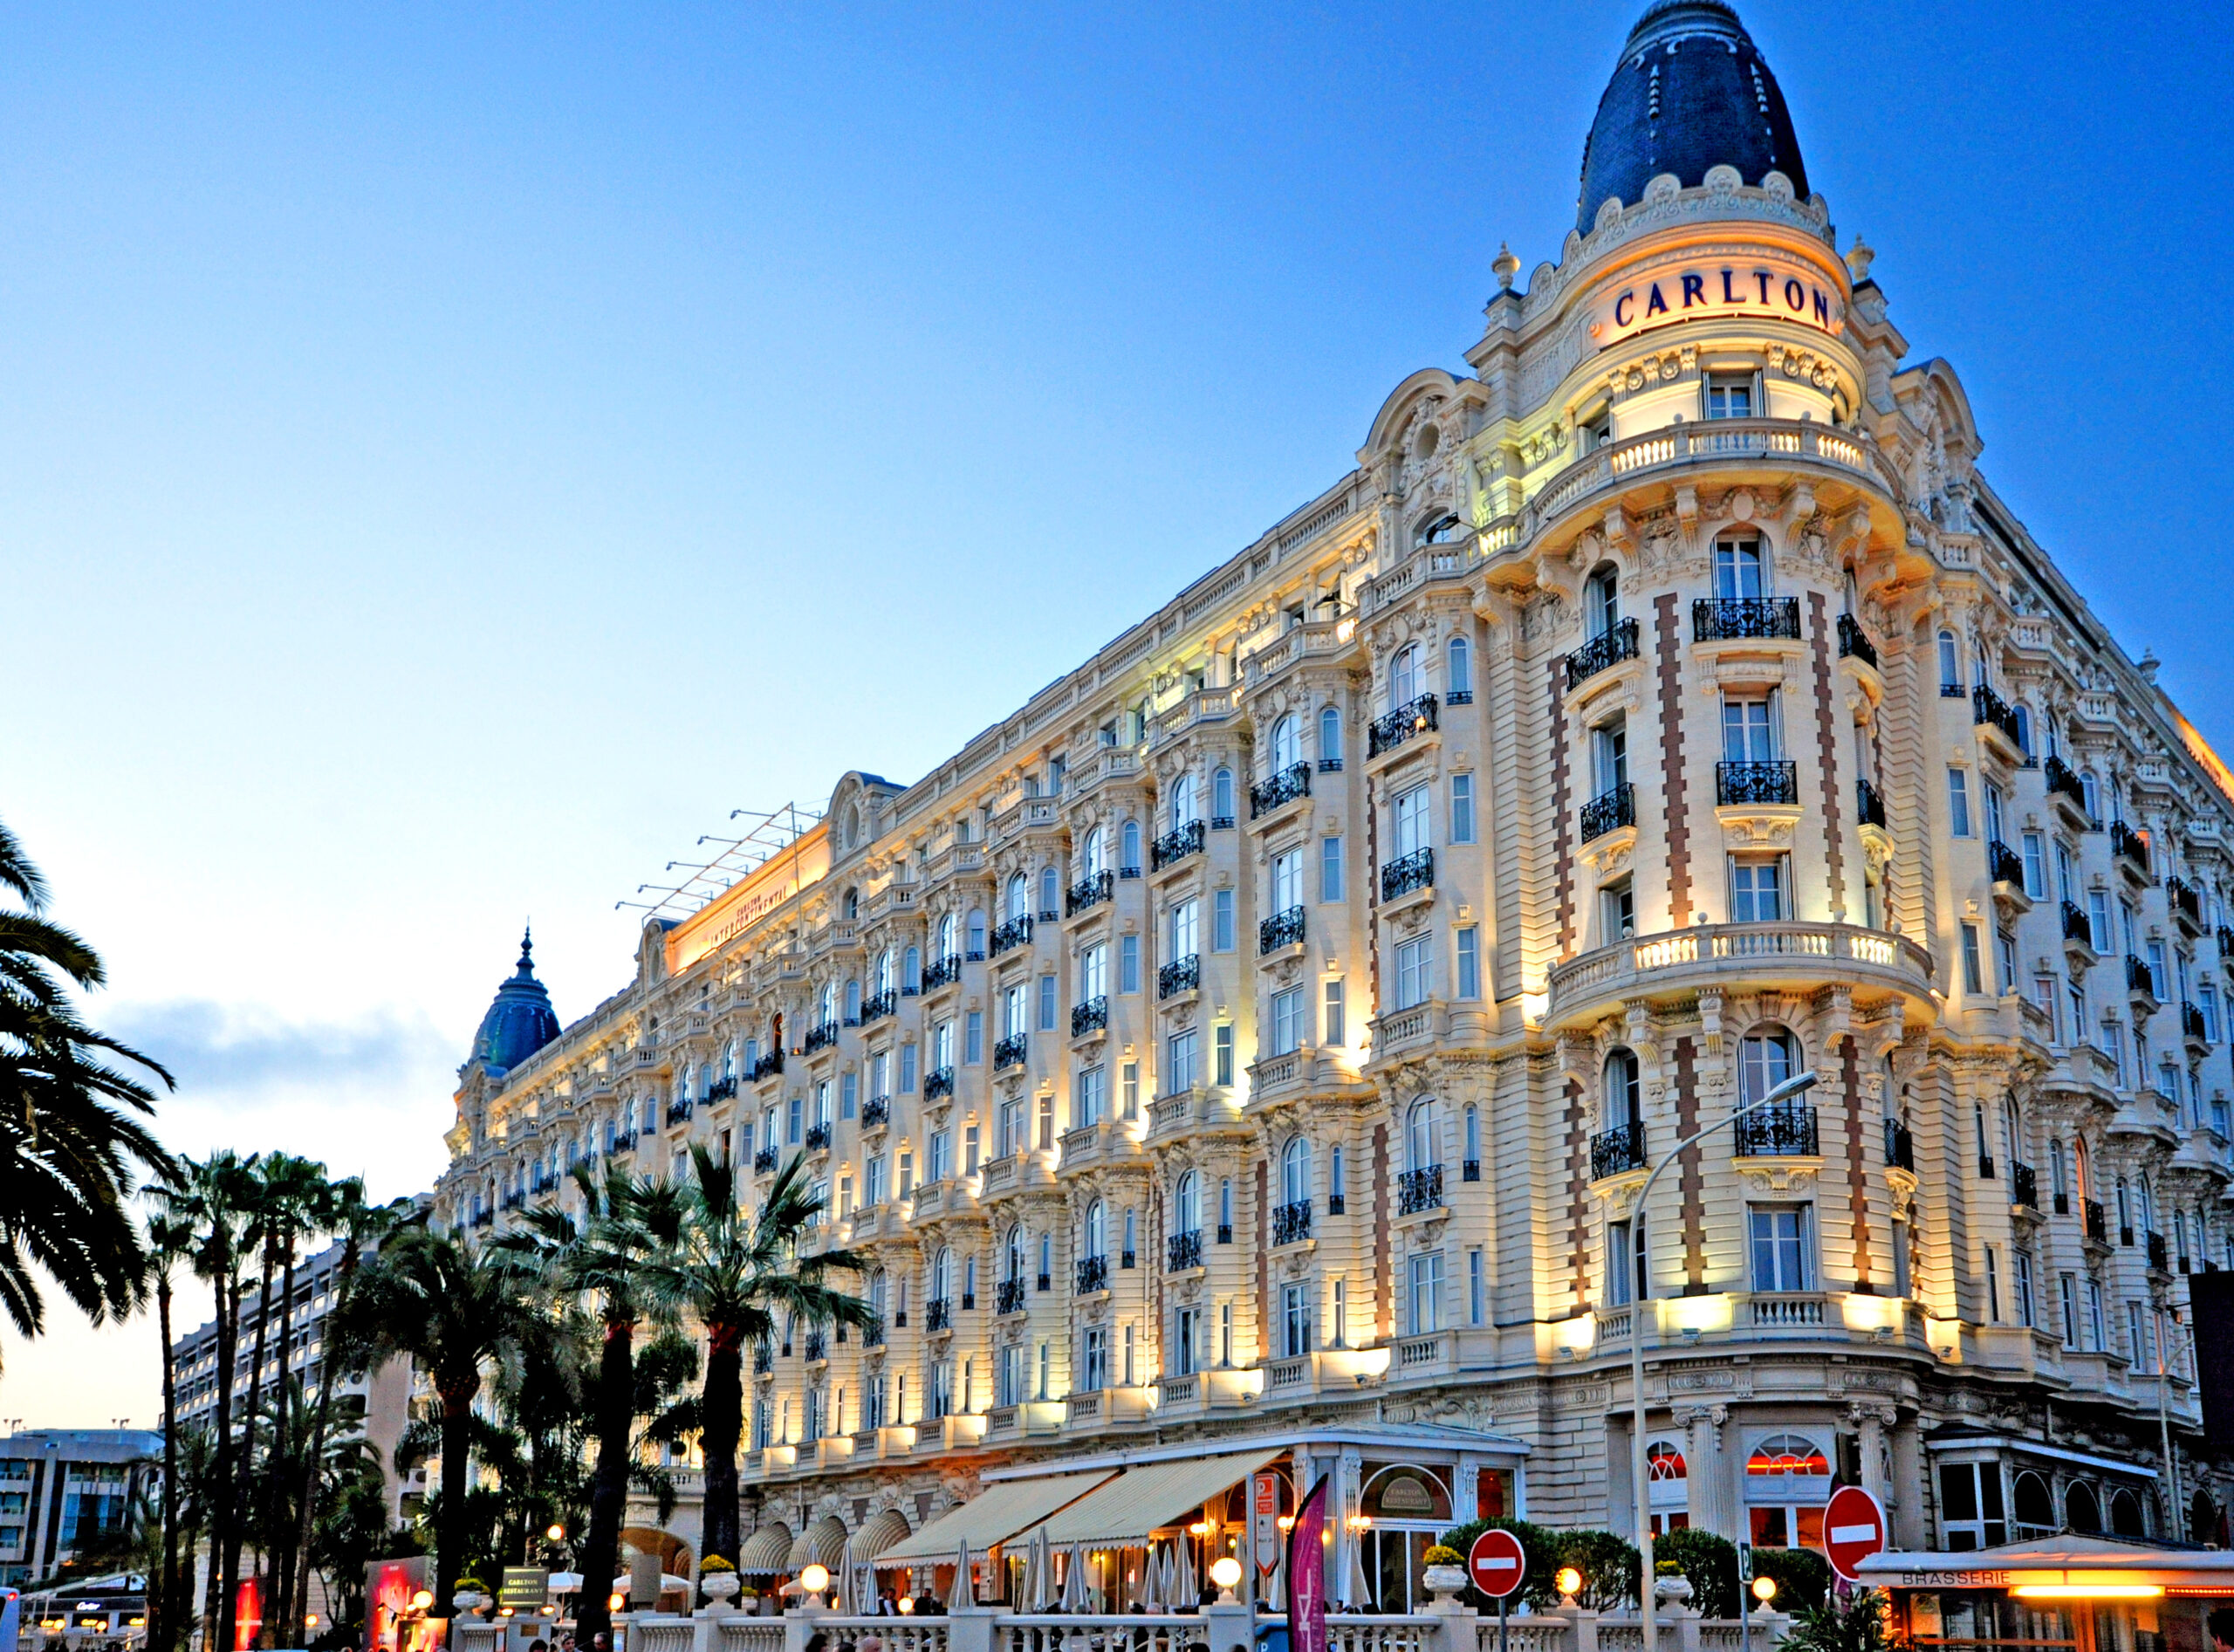 famous Carlton hotel in Cannes, South of France